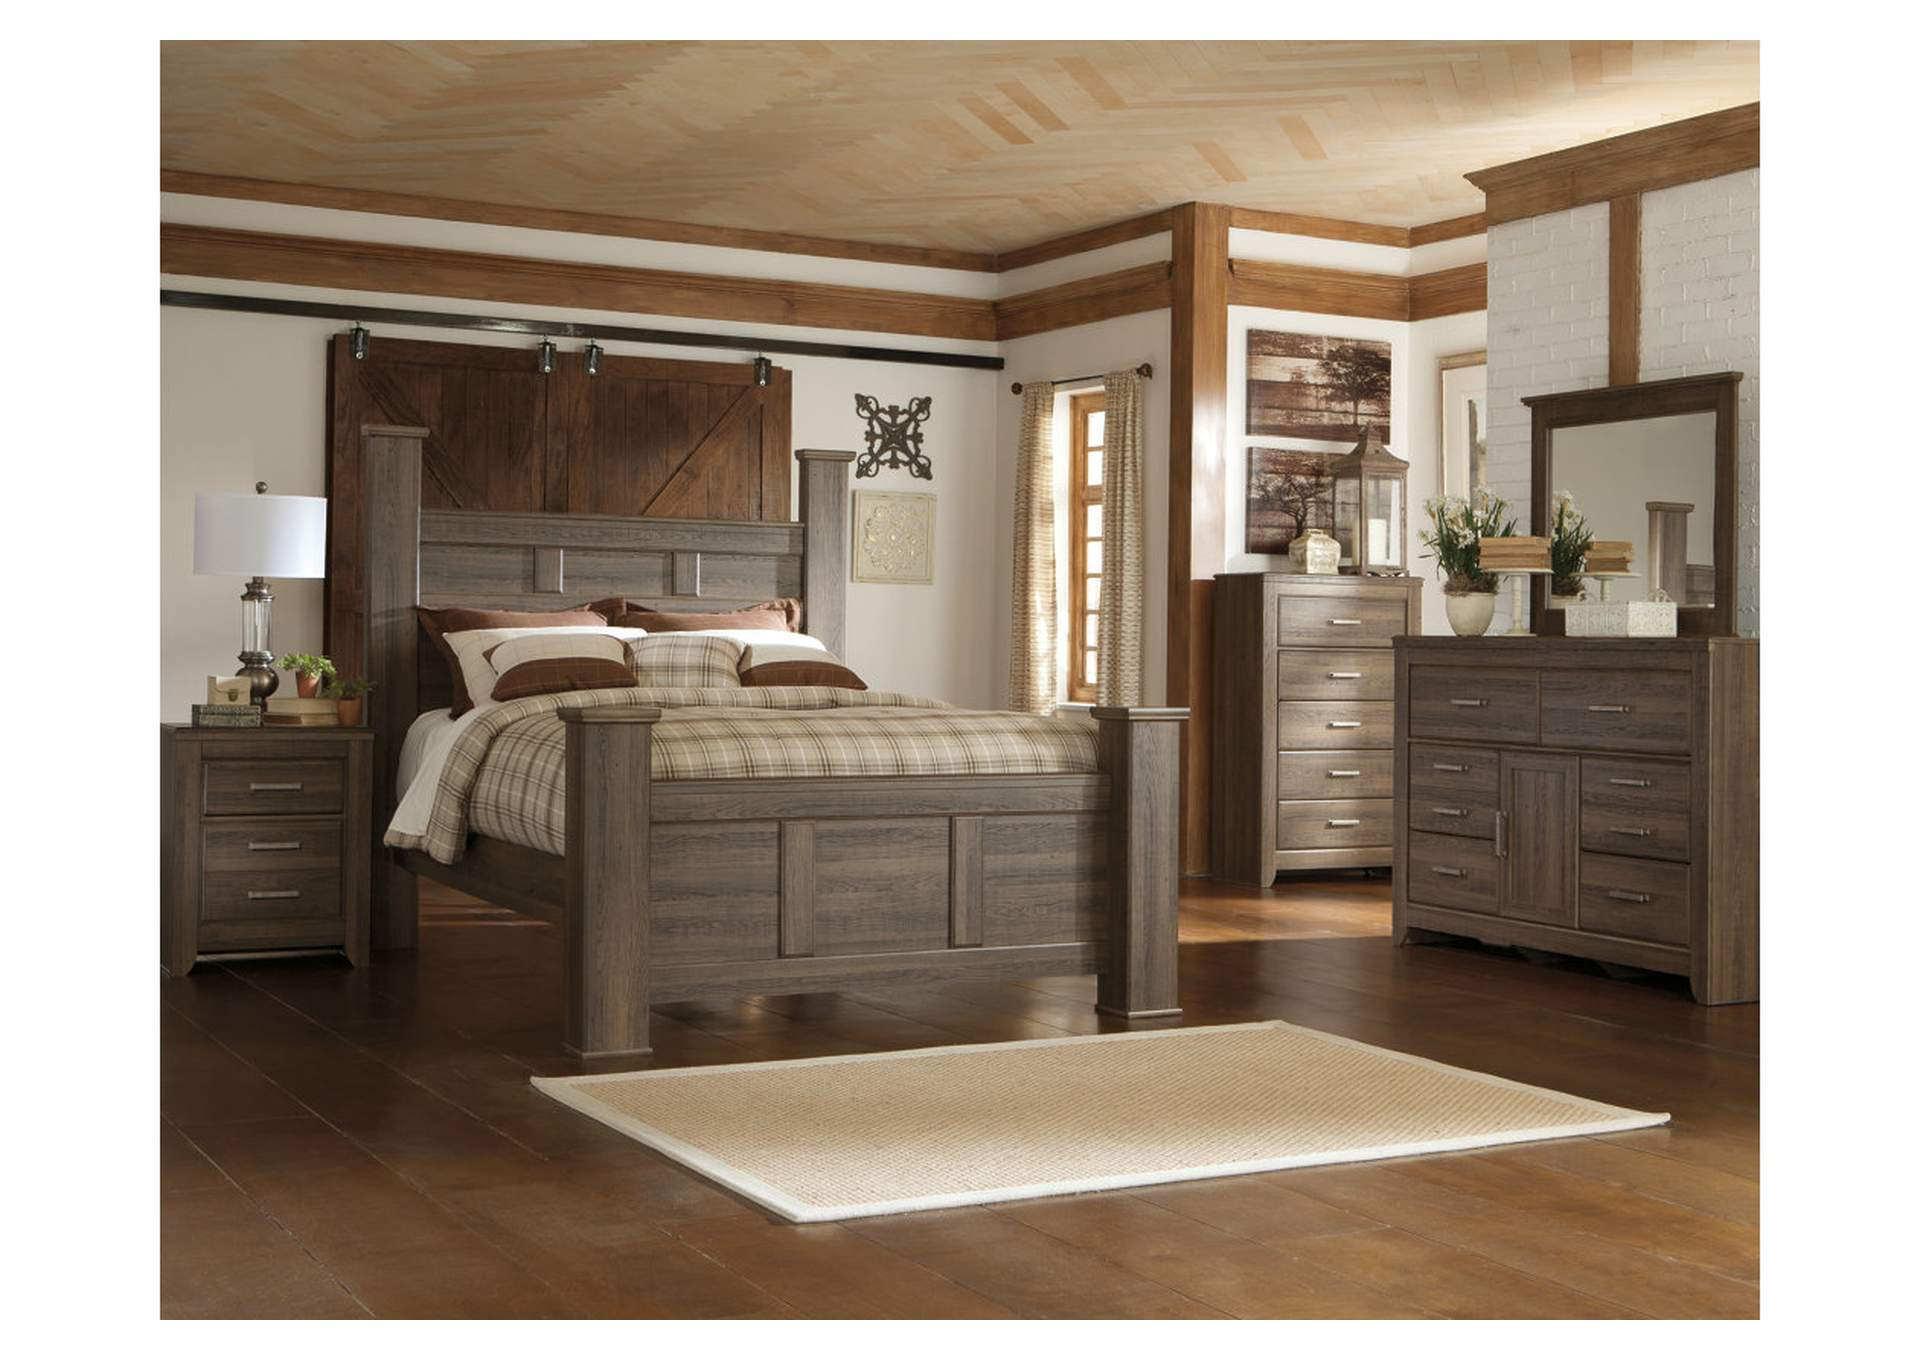 Juararo Queen Poster Bed w/Dresser, Mirror, Drawer Chest & Nightstand,Signature Design By Ashley